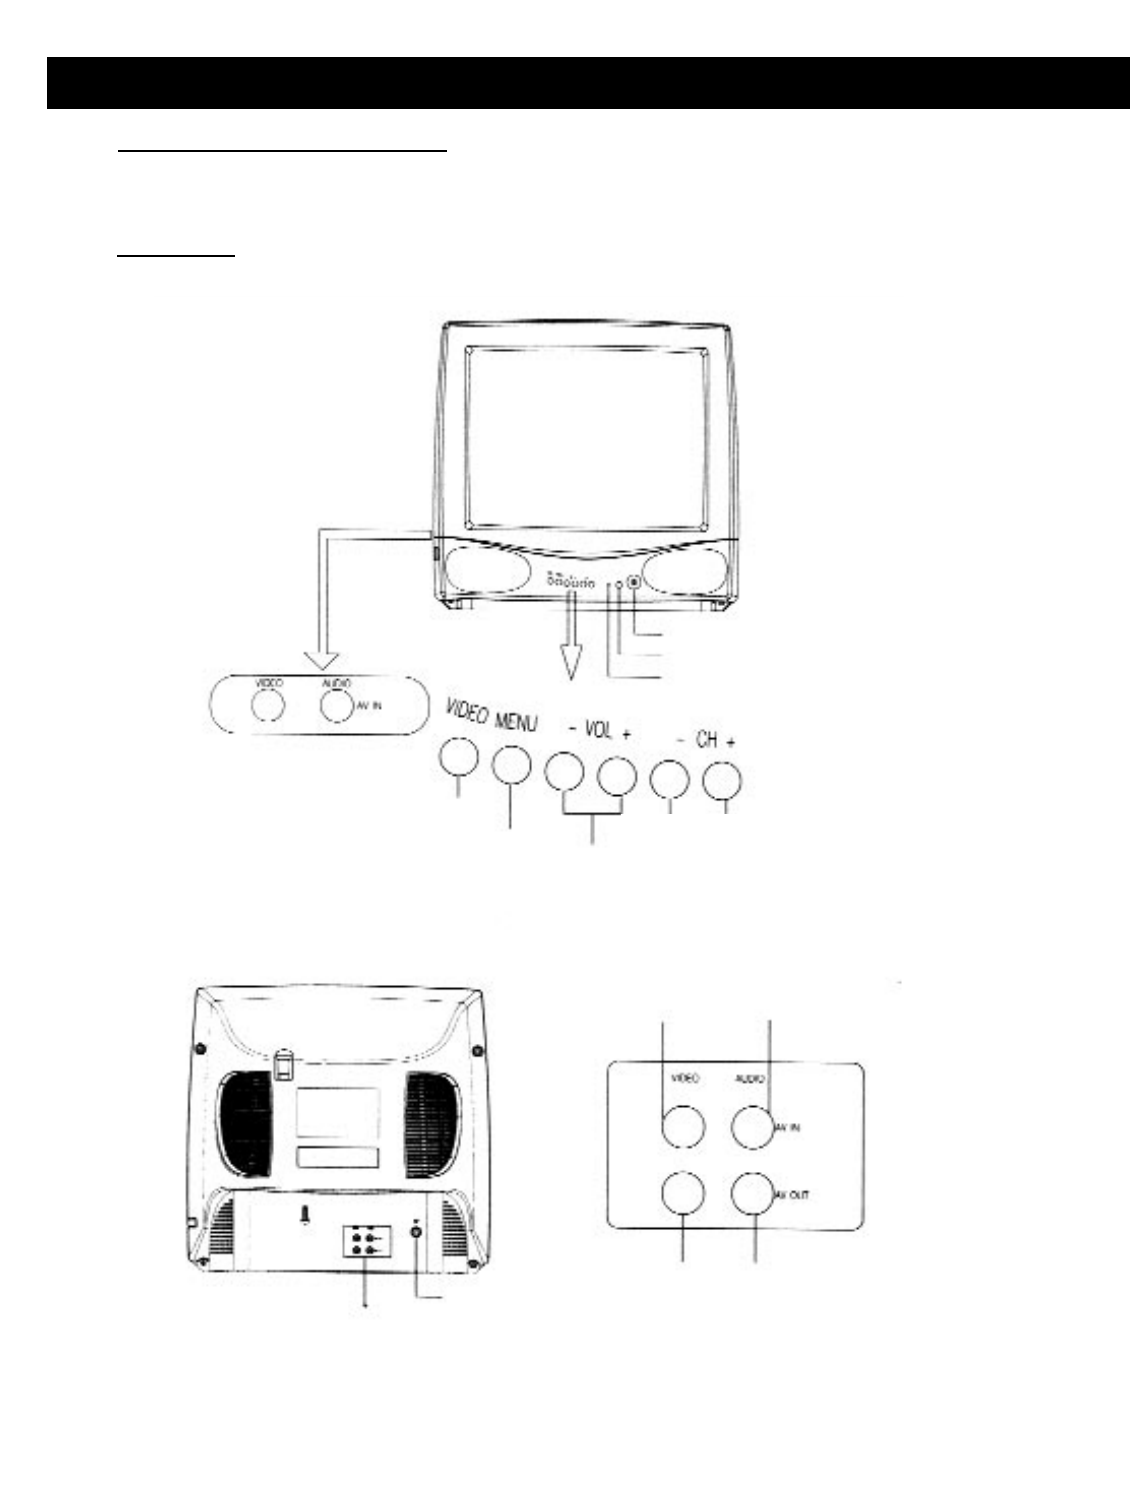 Page 9 of Apex Digital Flat Panel Television AT2002 User